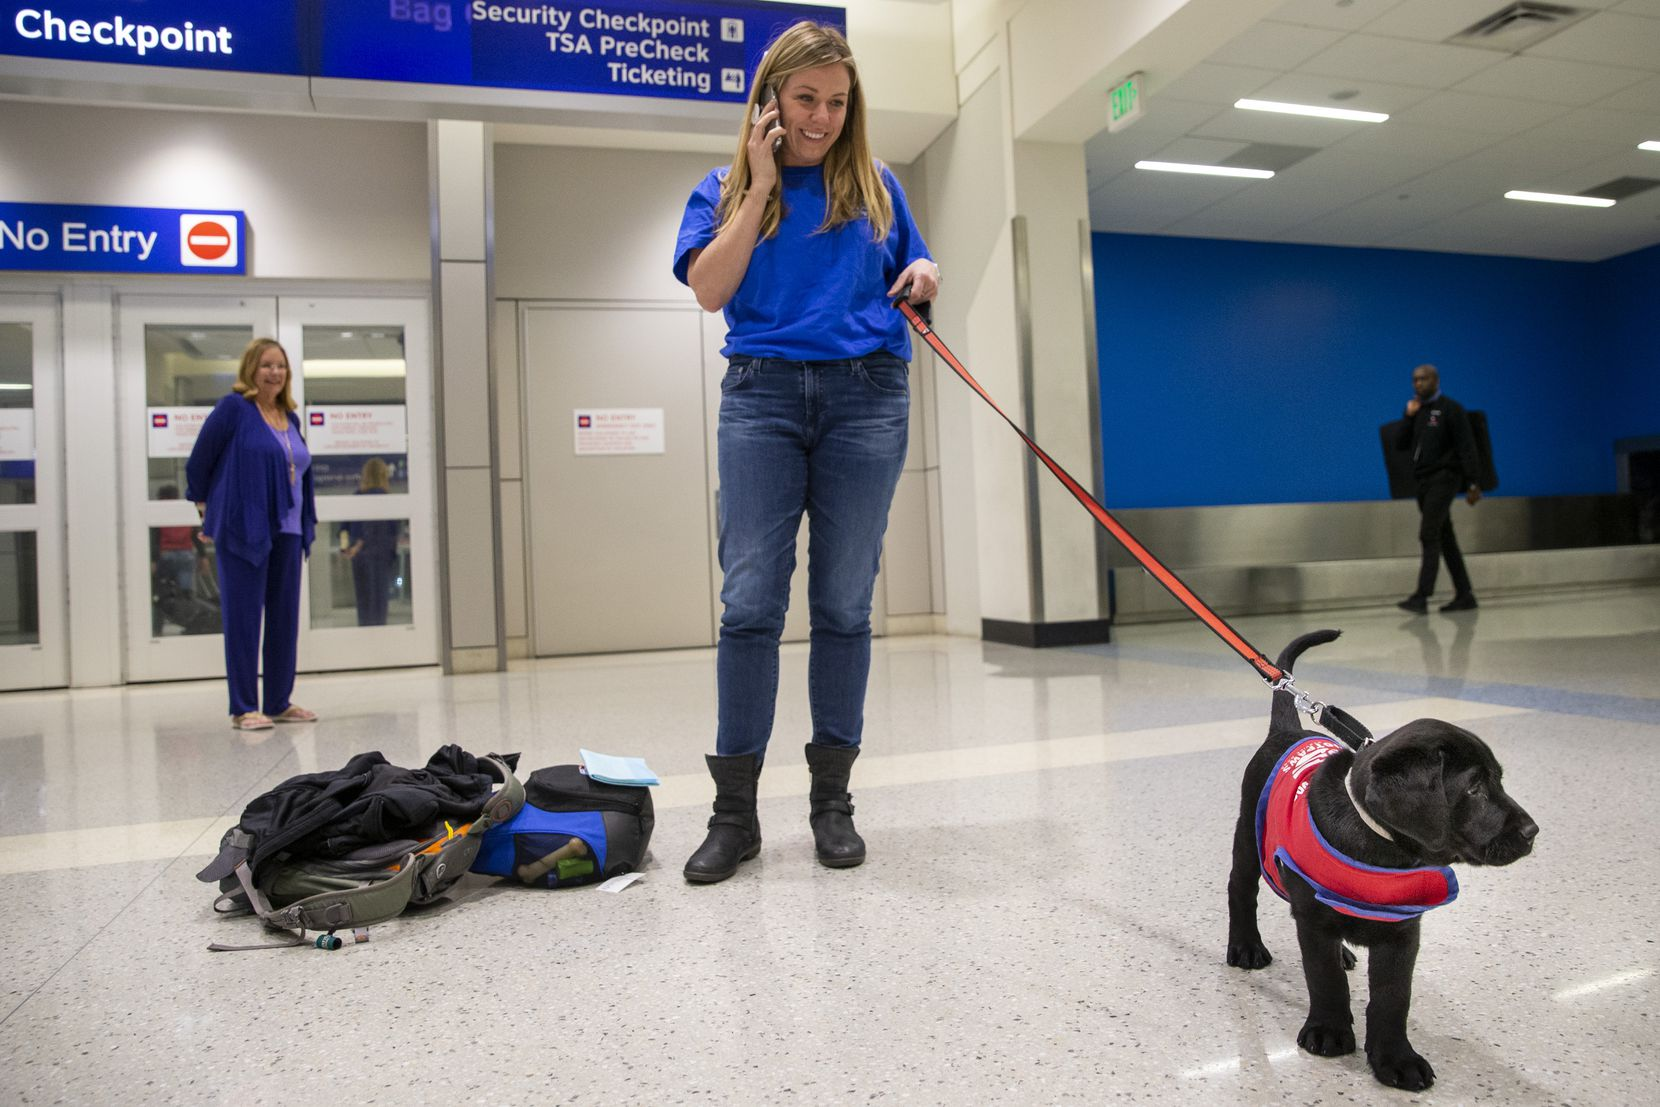 Caroline Clayton, an American Airlines employee, arrives with an 8-week-old lab puppy named Pine to DFW International Airport in Dallas on Saturday, Jan. 25, 2020. Pine the puppy was transported through an American Airlines initiative that allows employees to donate their benefits and miles to transport puppies to be trained as service dogs. Clayton delivered Pine to an employee from Patriot Paws, based in Rockwall, Texas.